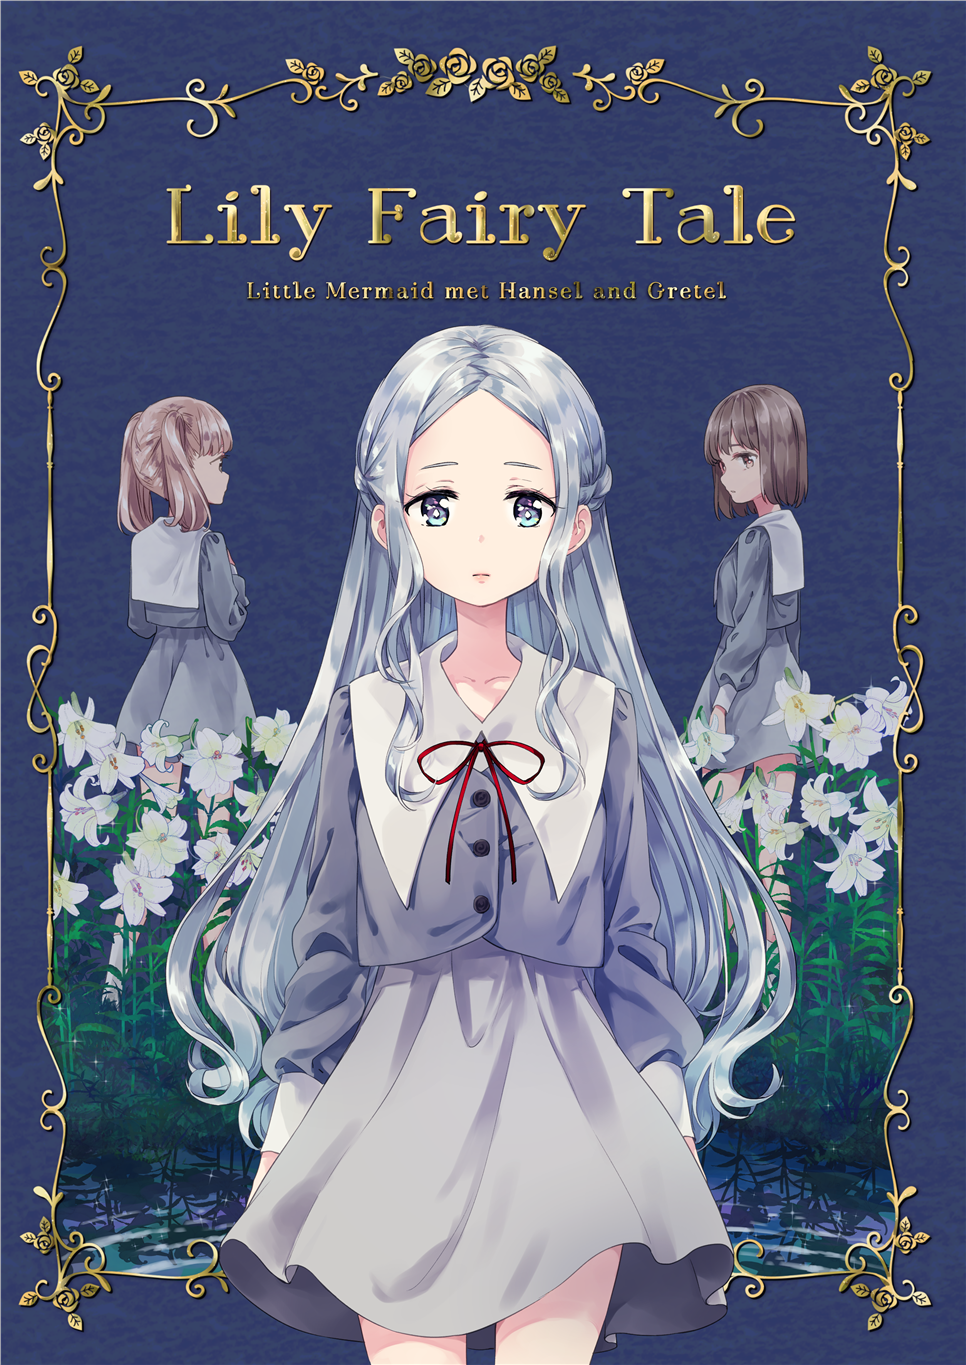 Lily Fairy Tale -Little Mermaid met Hansel and Gretel-